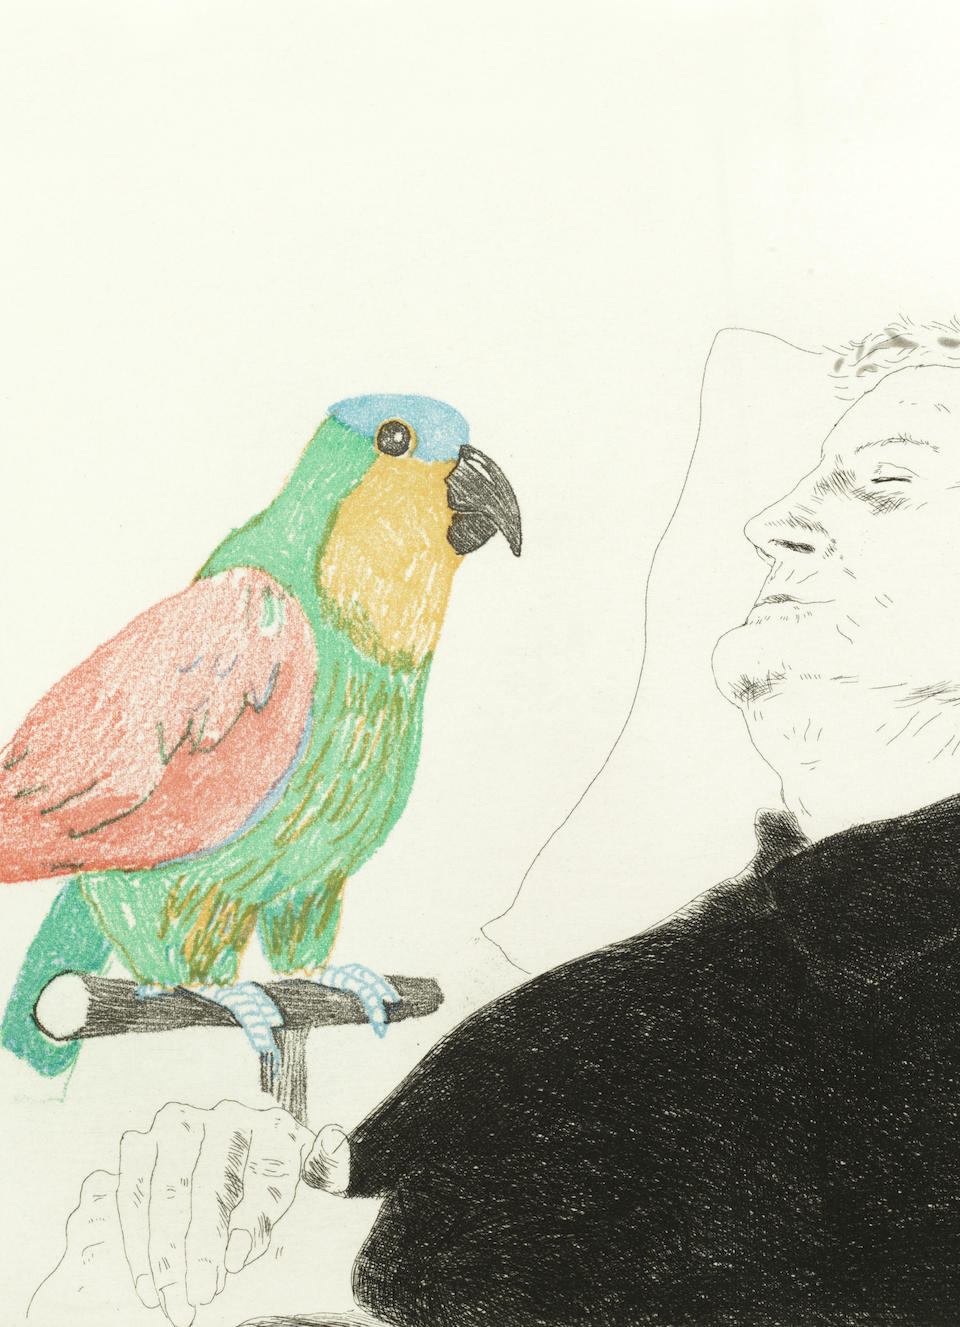 David Hockney (British, born 1937) Félicité sleeping with Parrot, from 'Illustration for A Simple Heart of Gustave Flaubert'  Etching with aquatint printed in colours, 1974, on wove, signed in pencil, one of twenty-three artist's proofs aside the numbered edition of 100, printed by Atelier Crommelynck, Paris, published by Petersburg Press, London, the full sheet, 219 x 236 mm (8 5/8 x 9 1/4in)(PL)